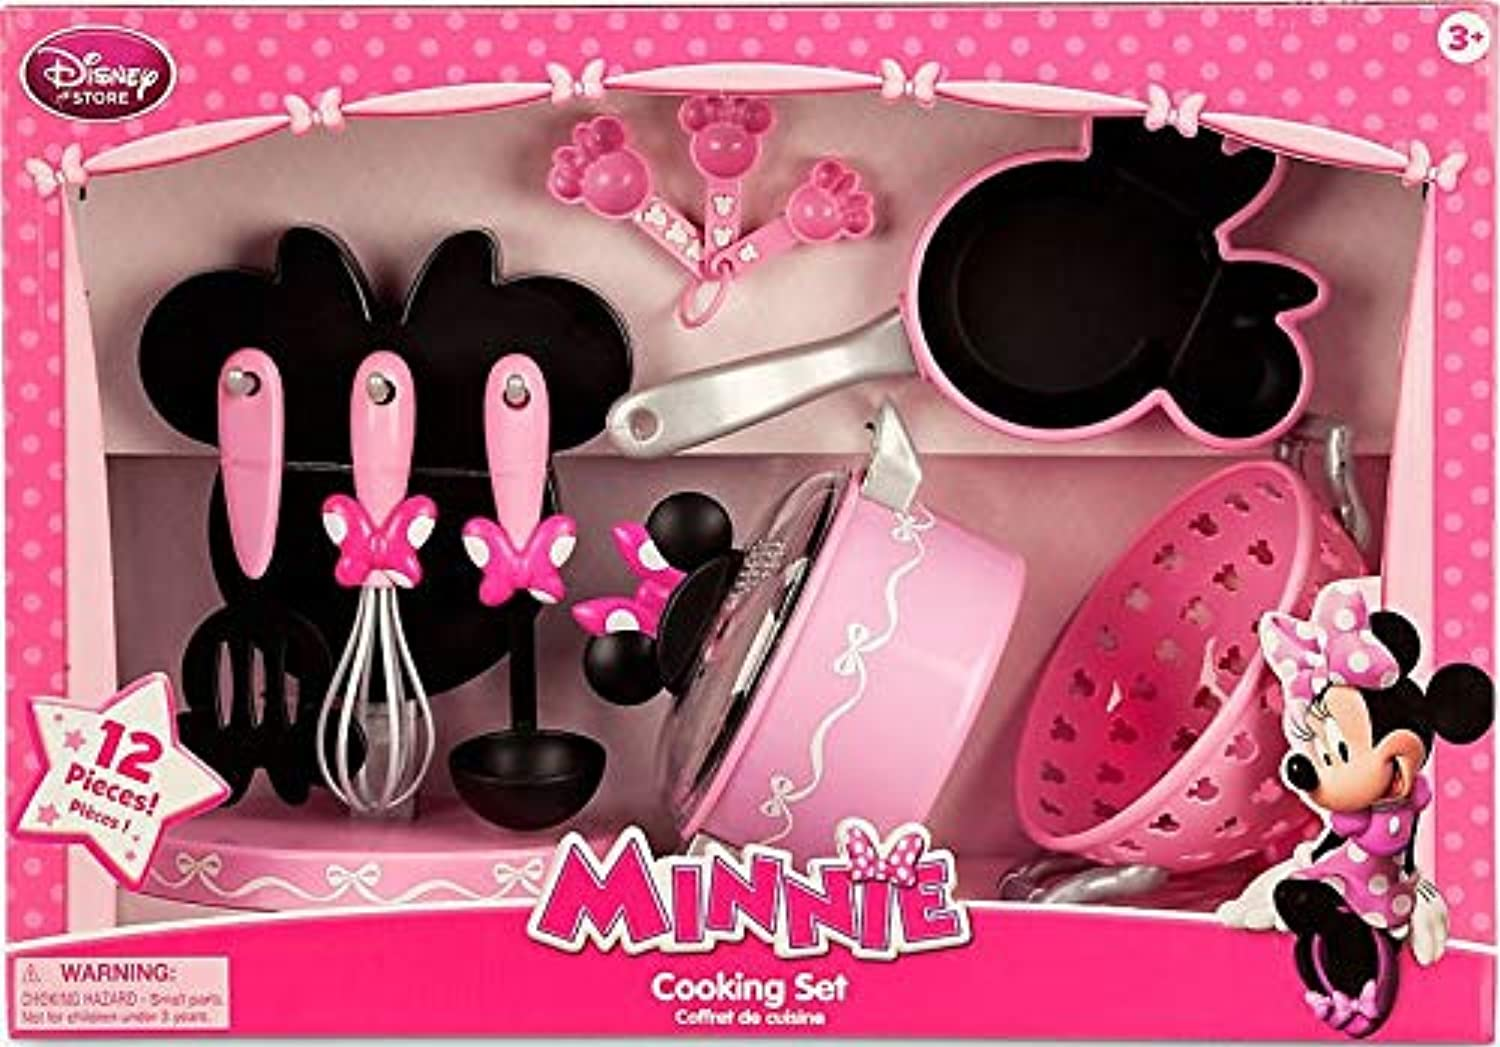 Disney Minnie Mouse Cooking Set Playset by Disney